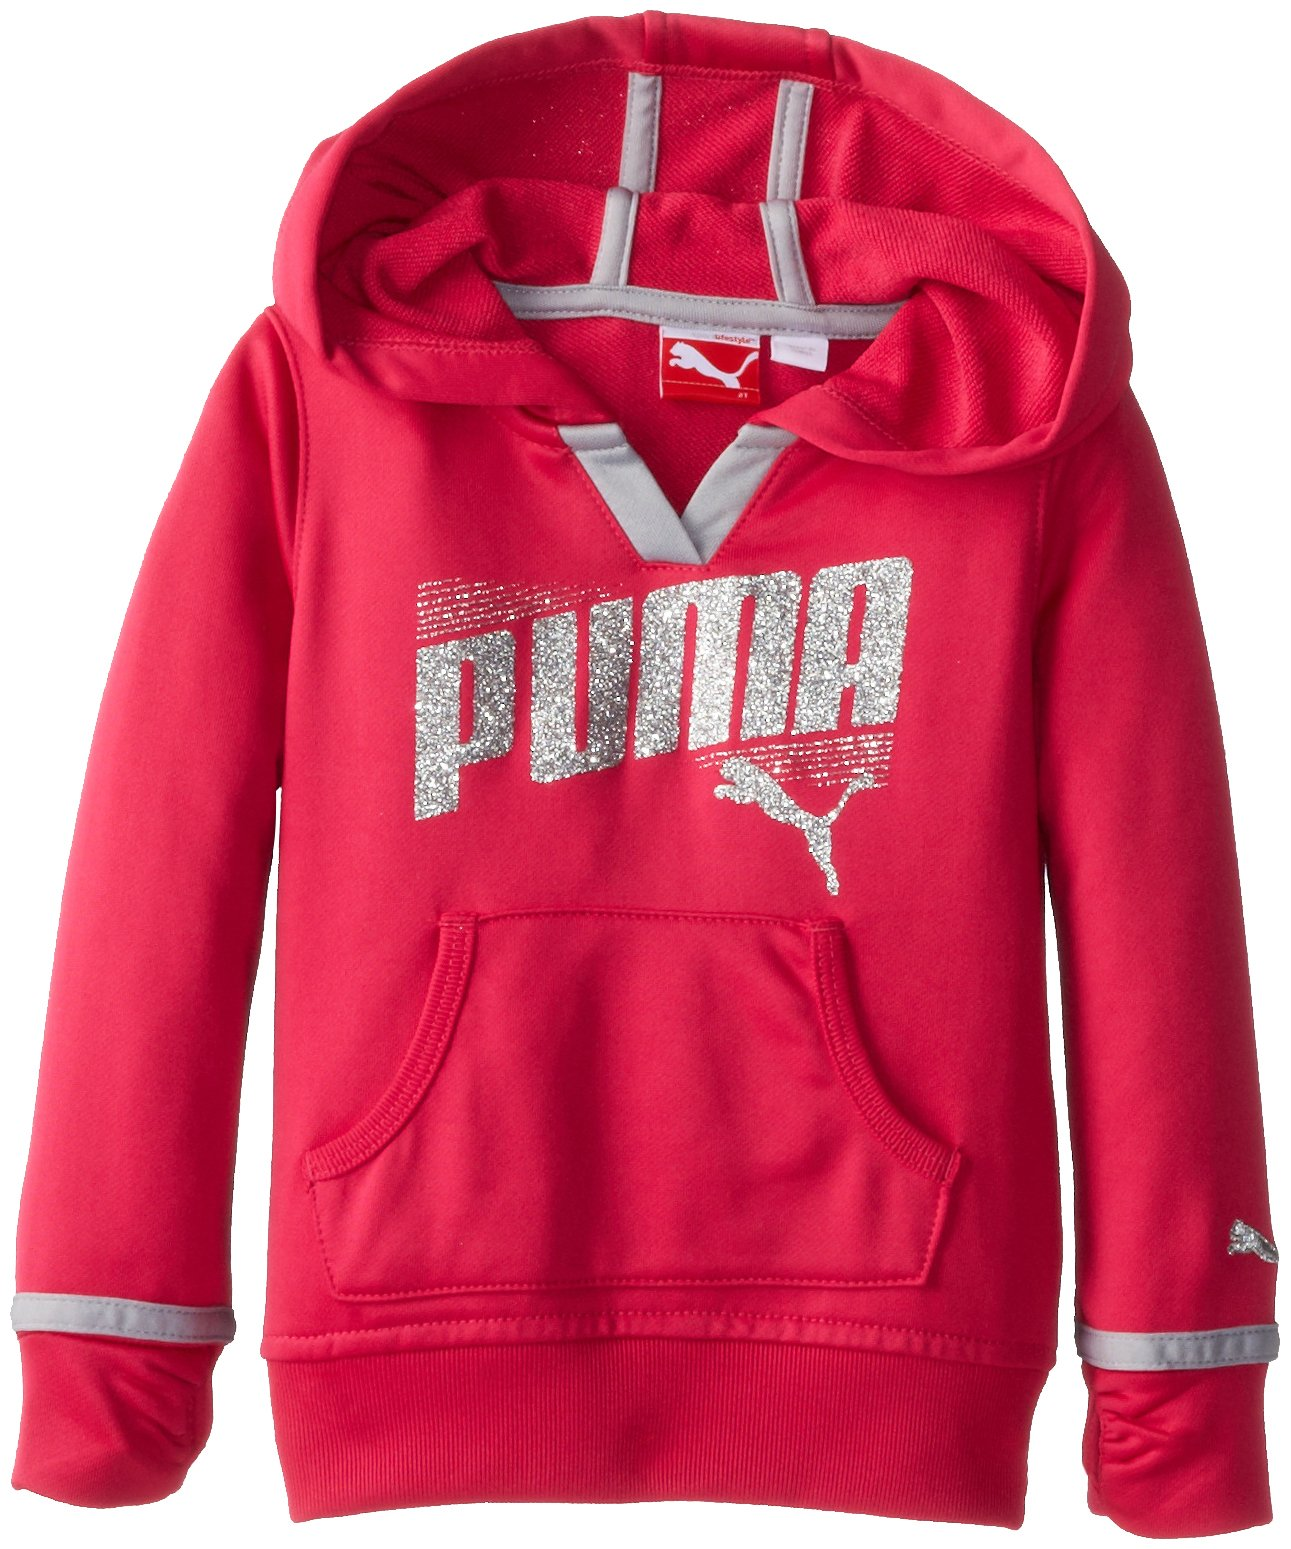 PUMA Little Girls' Active Pullover,Beet Root Purple,5 by PUMA (Image #1)